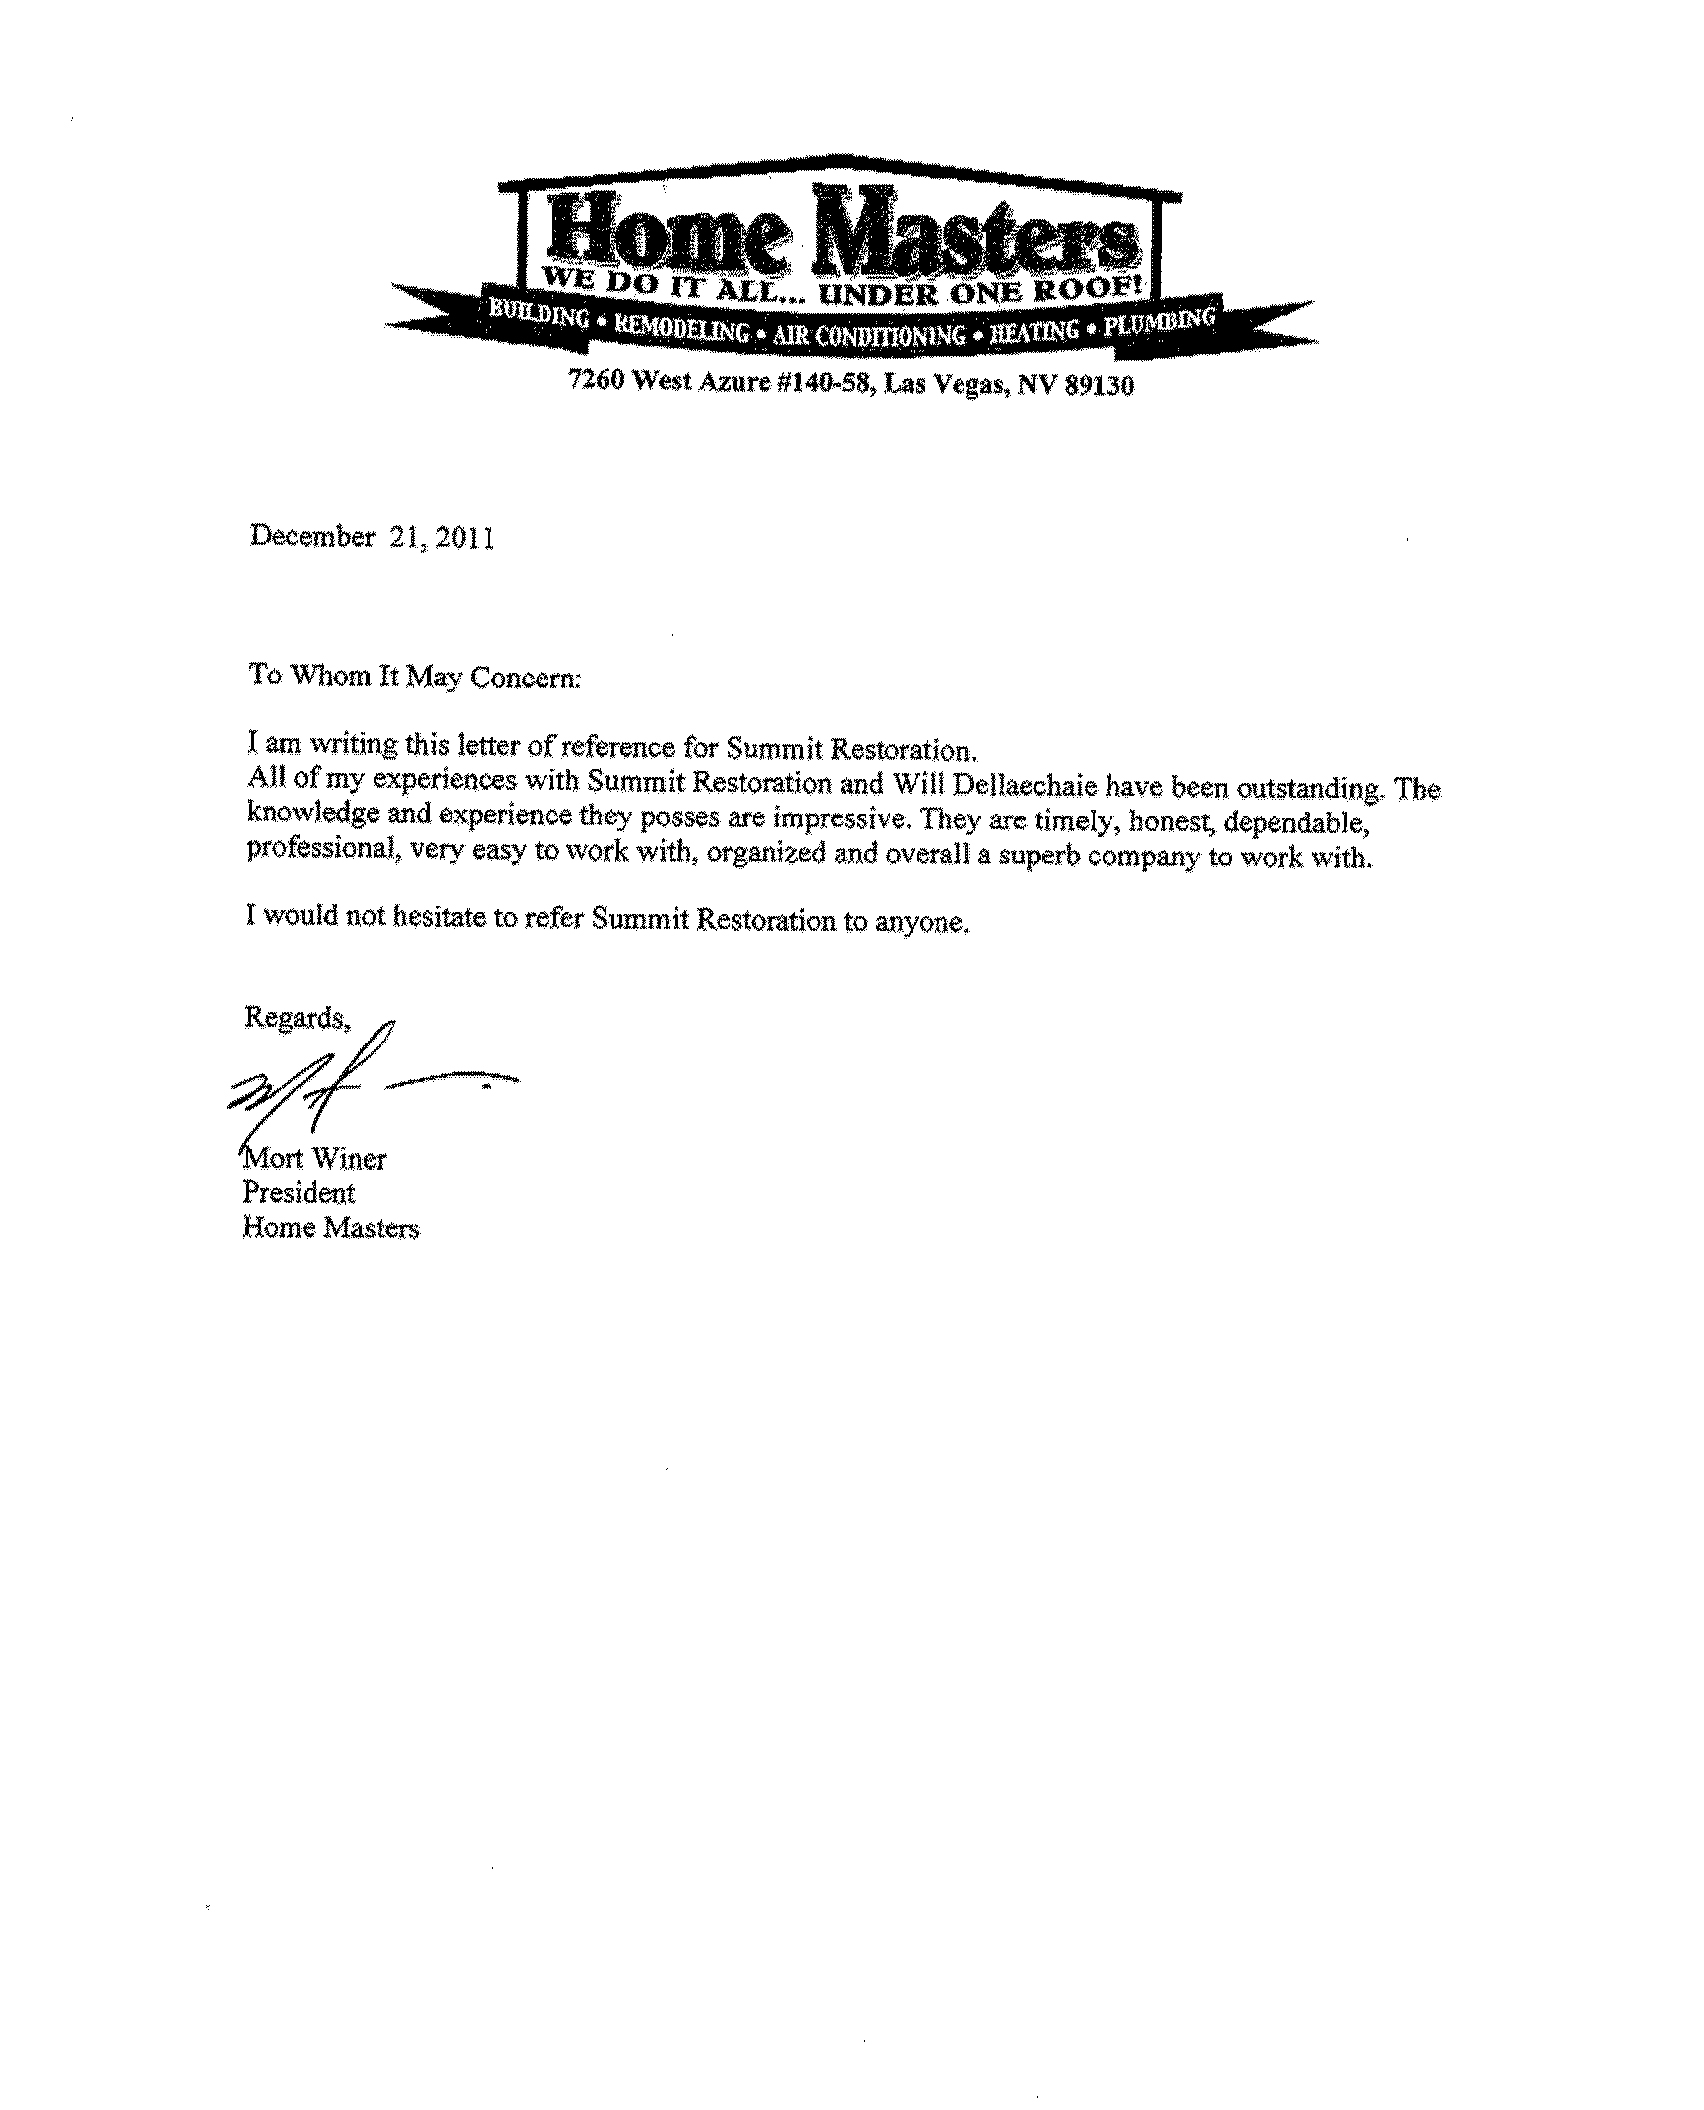 Testimonial from Mort Winer – Home Masters